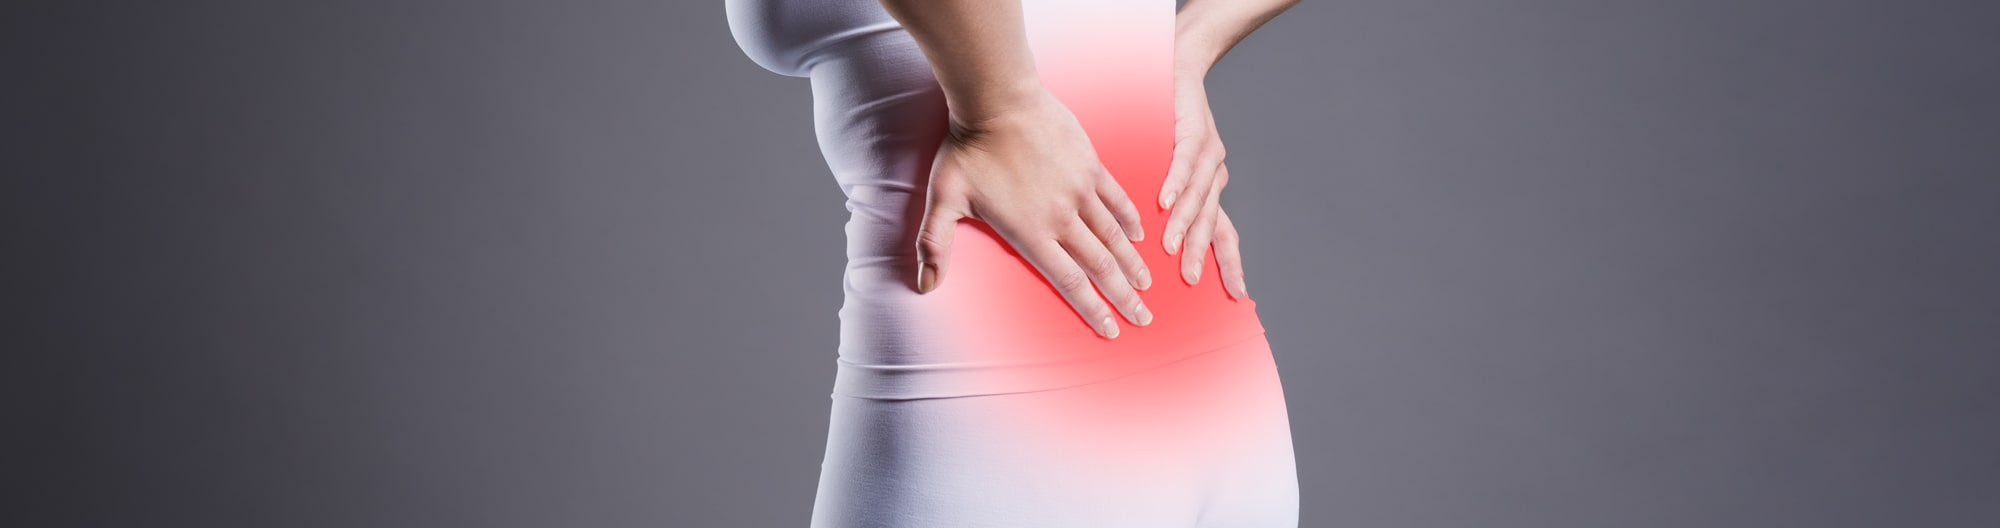 Sciatica chiropractic treatment winnipeg